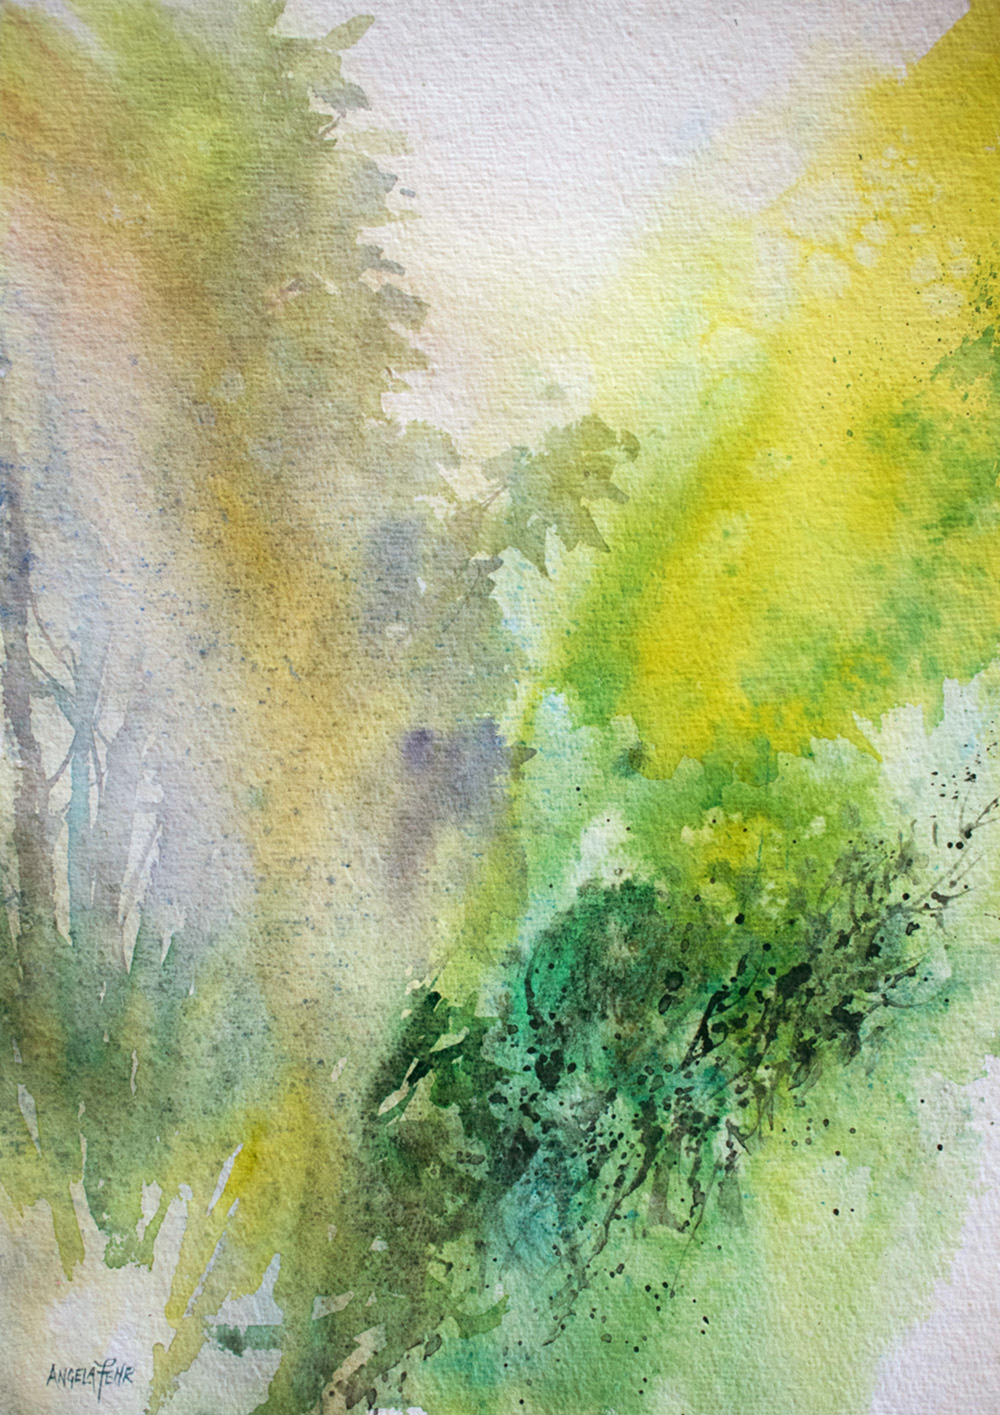 Midsummer Dreams, watercolor by Angela Fehr